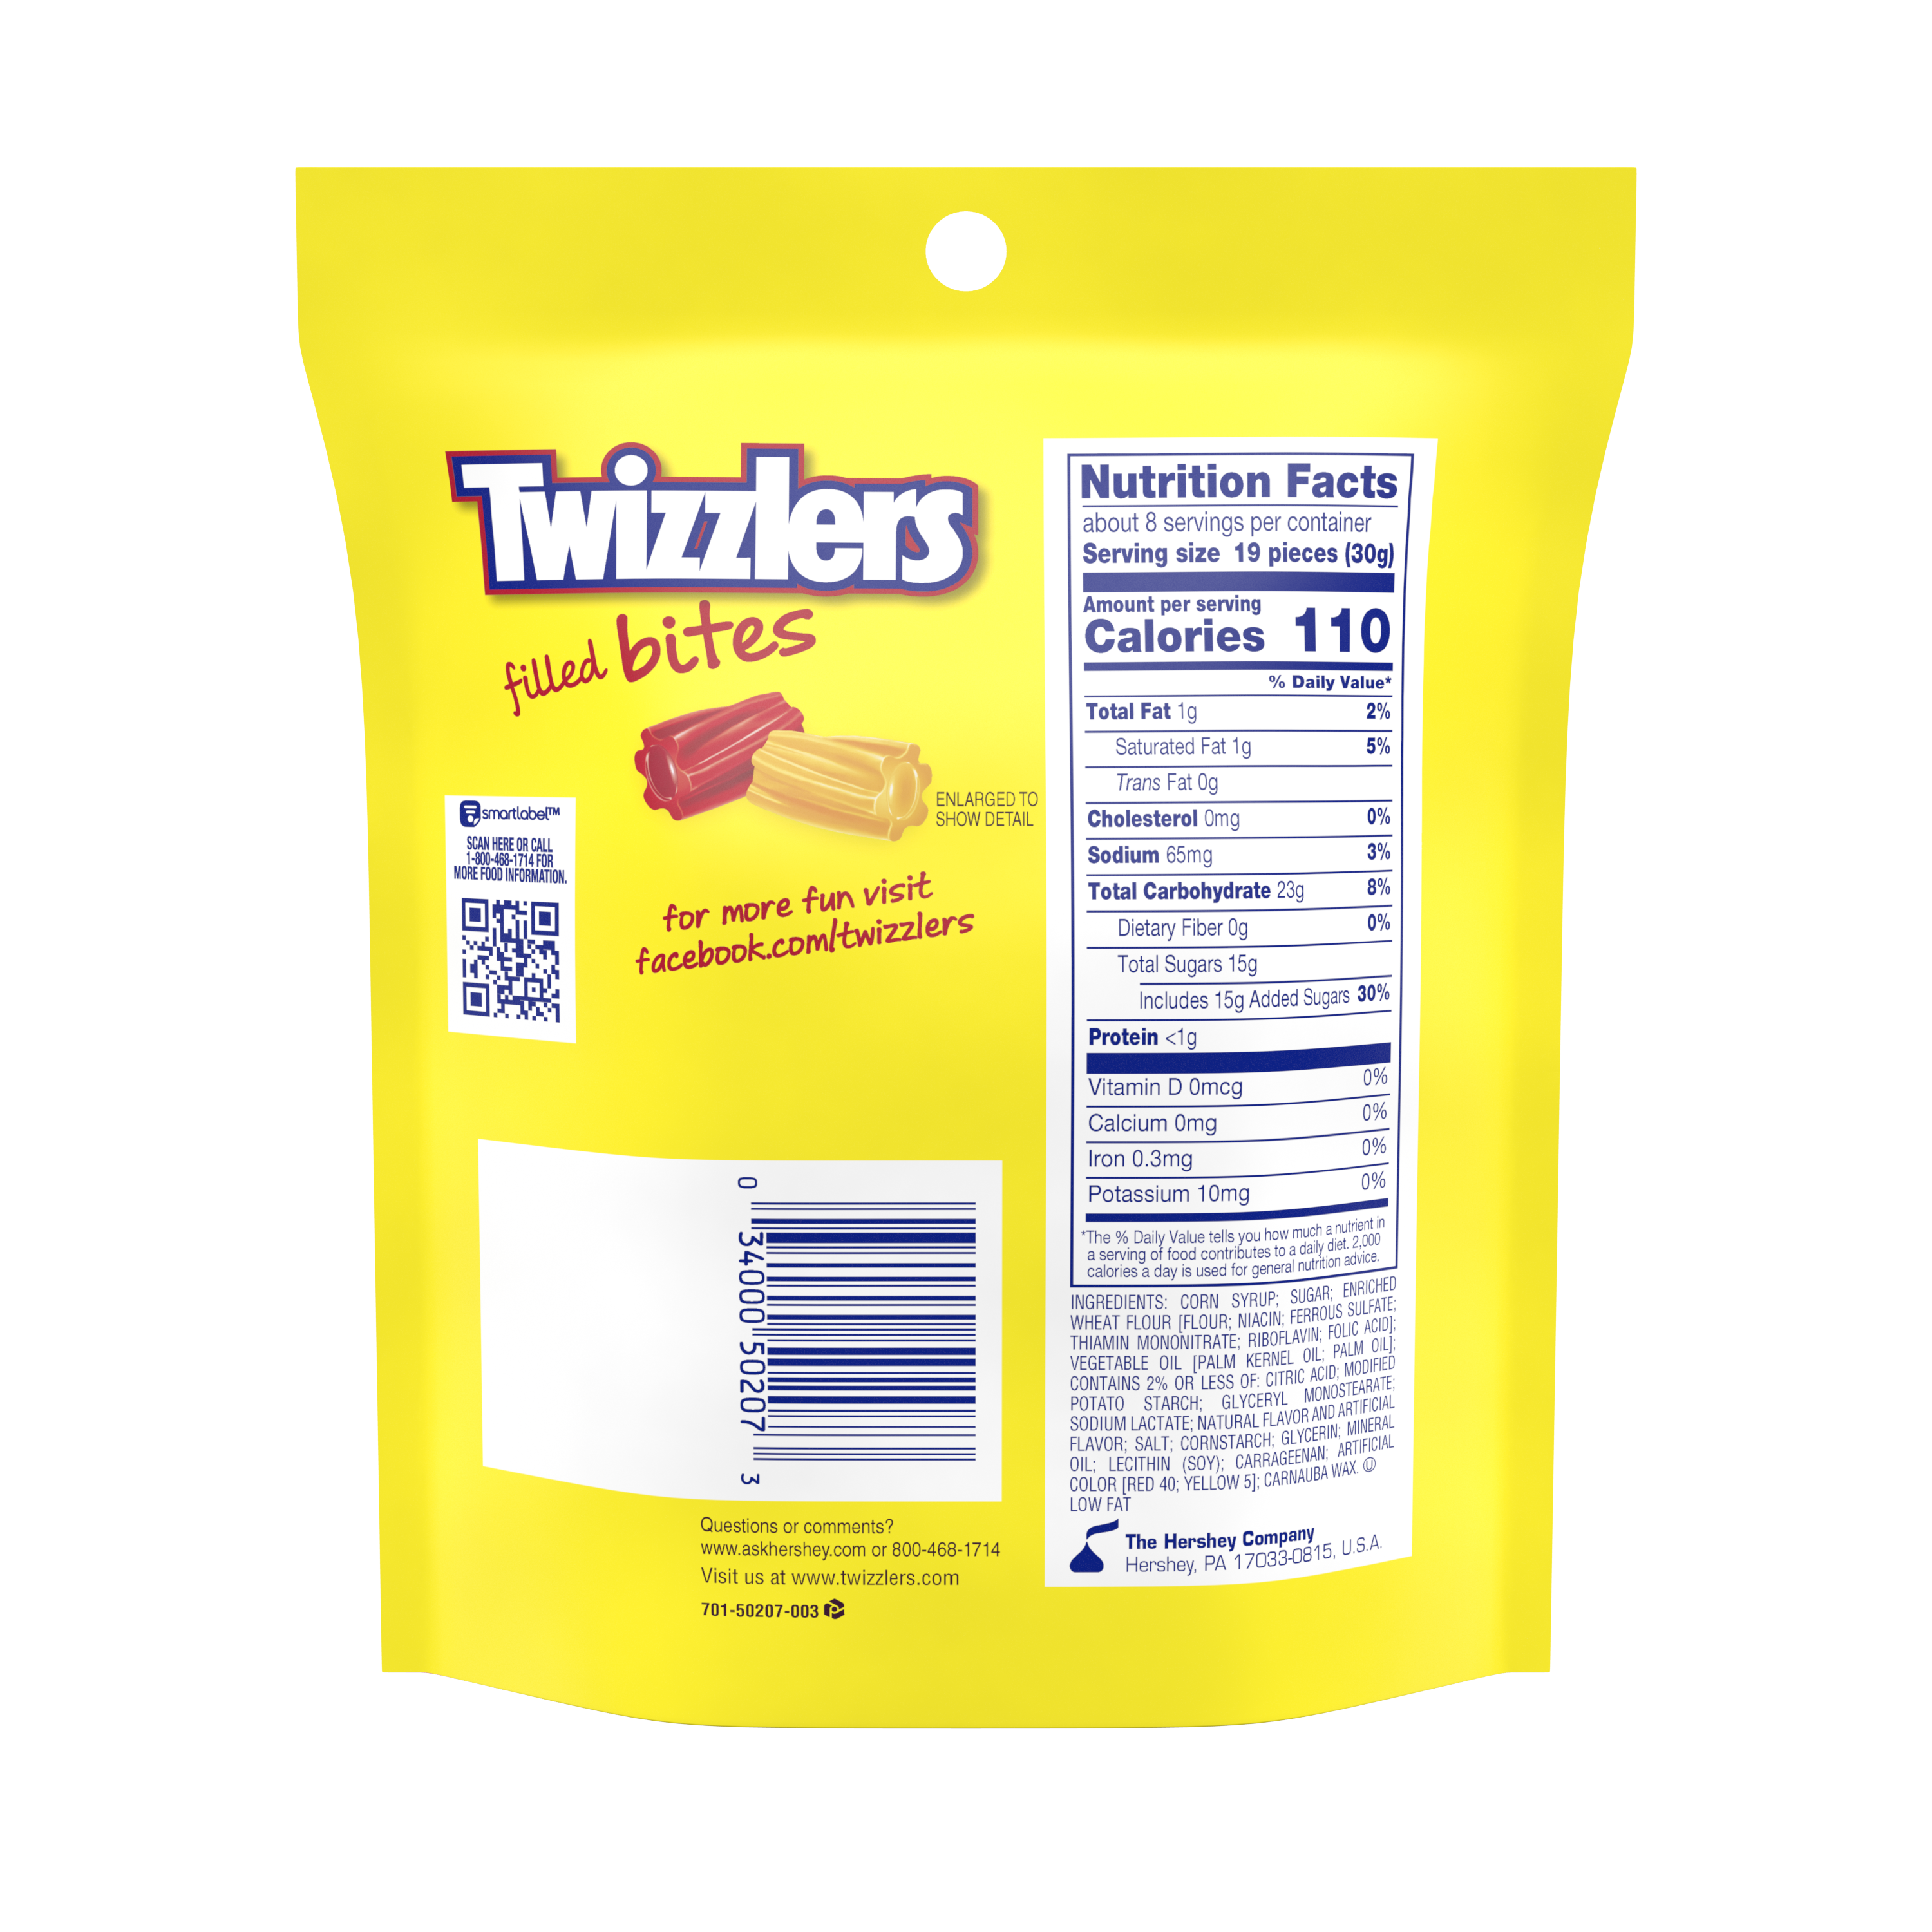 TWIZZLERS Filled Bites Sweet & Sour Cherry Kick Citrus Punch Candy, 8 oz bag - Back of Package